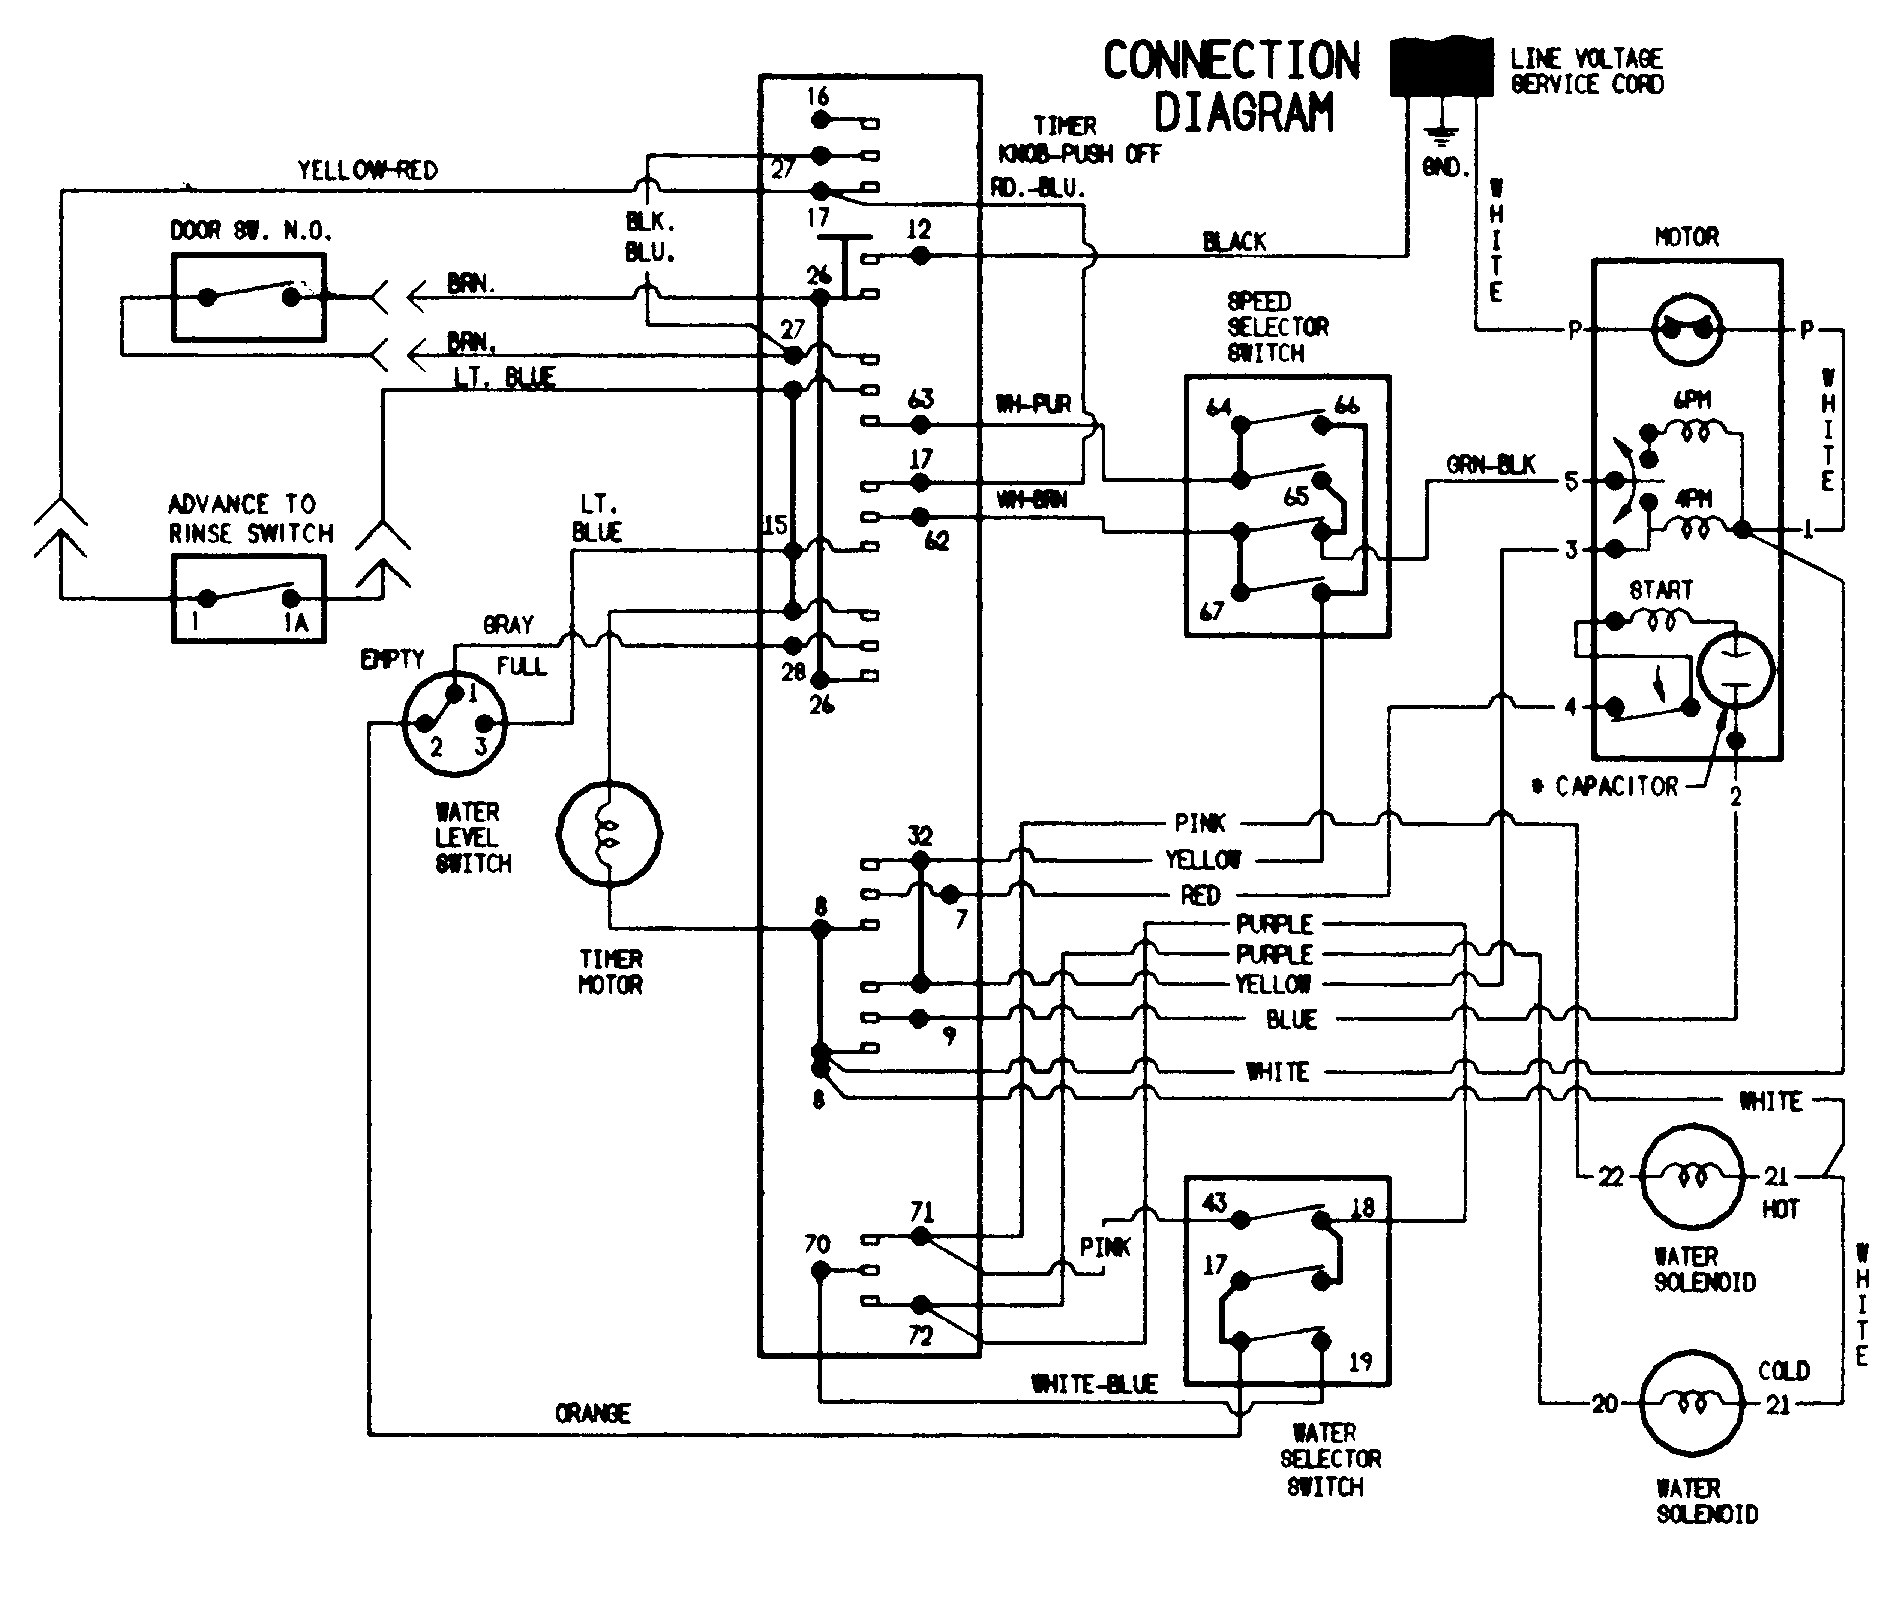 samsung washer wiring diagram wiring diagrams rh katagiri co Wiring- Diagram Wire Harness Not Taped